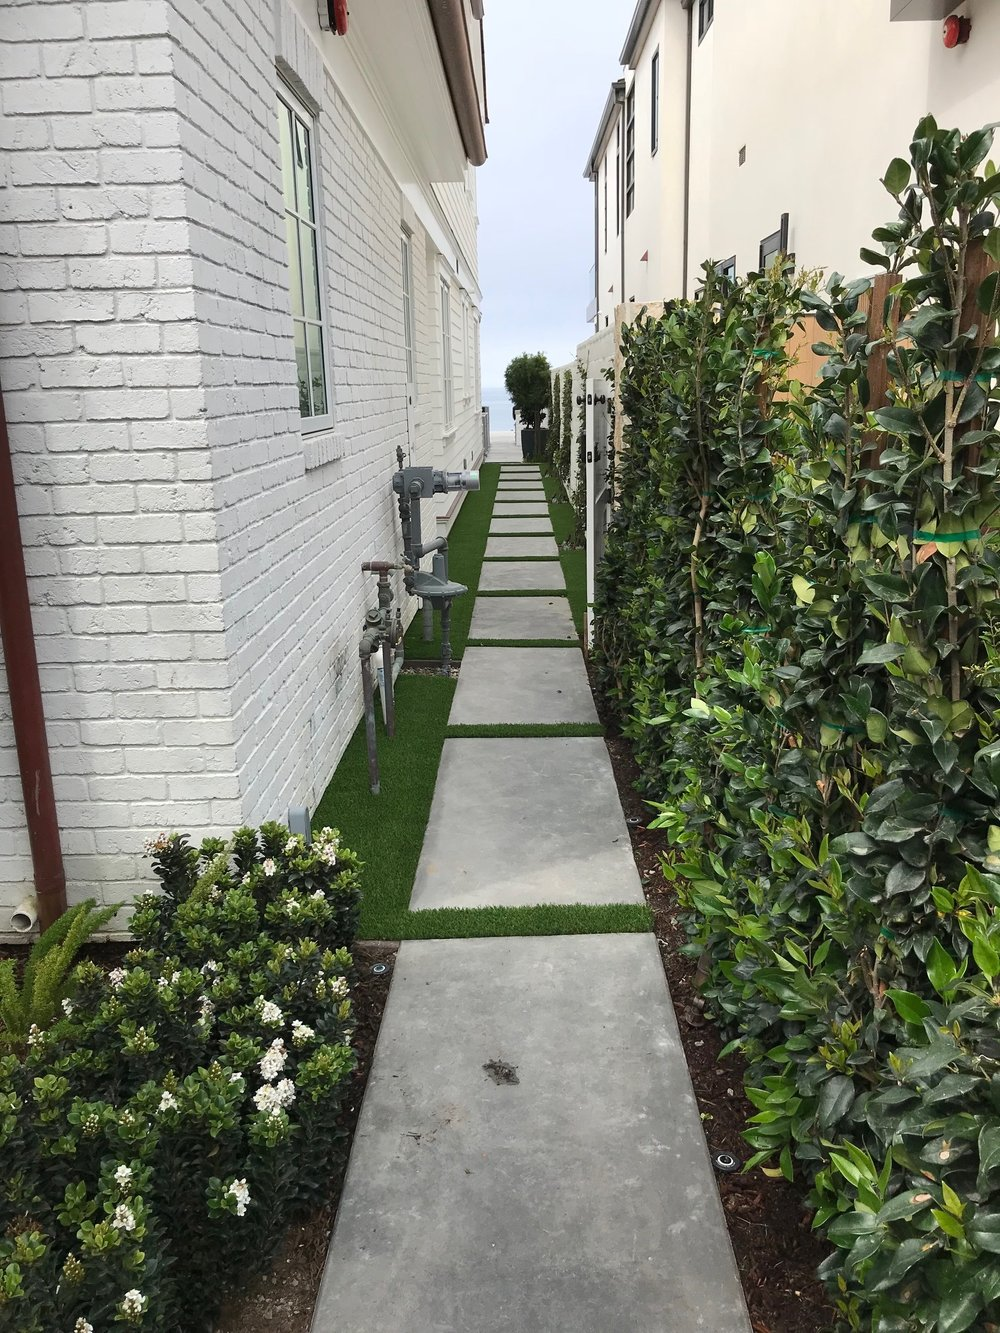 Masory walkway in Dana Point, California, United States